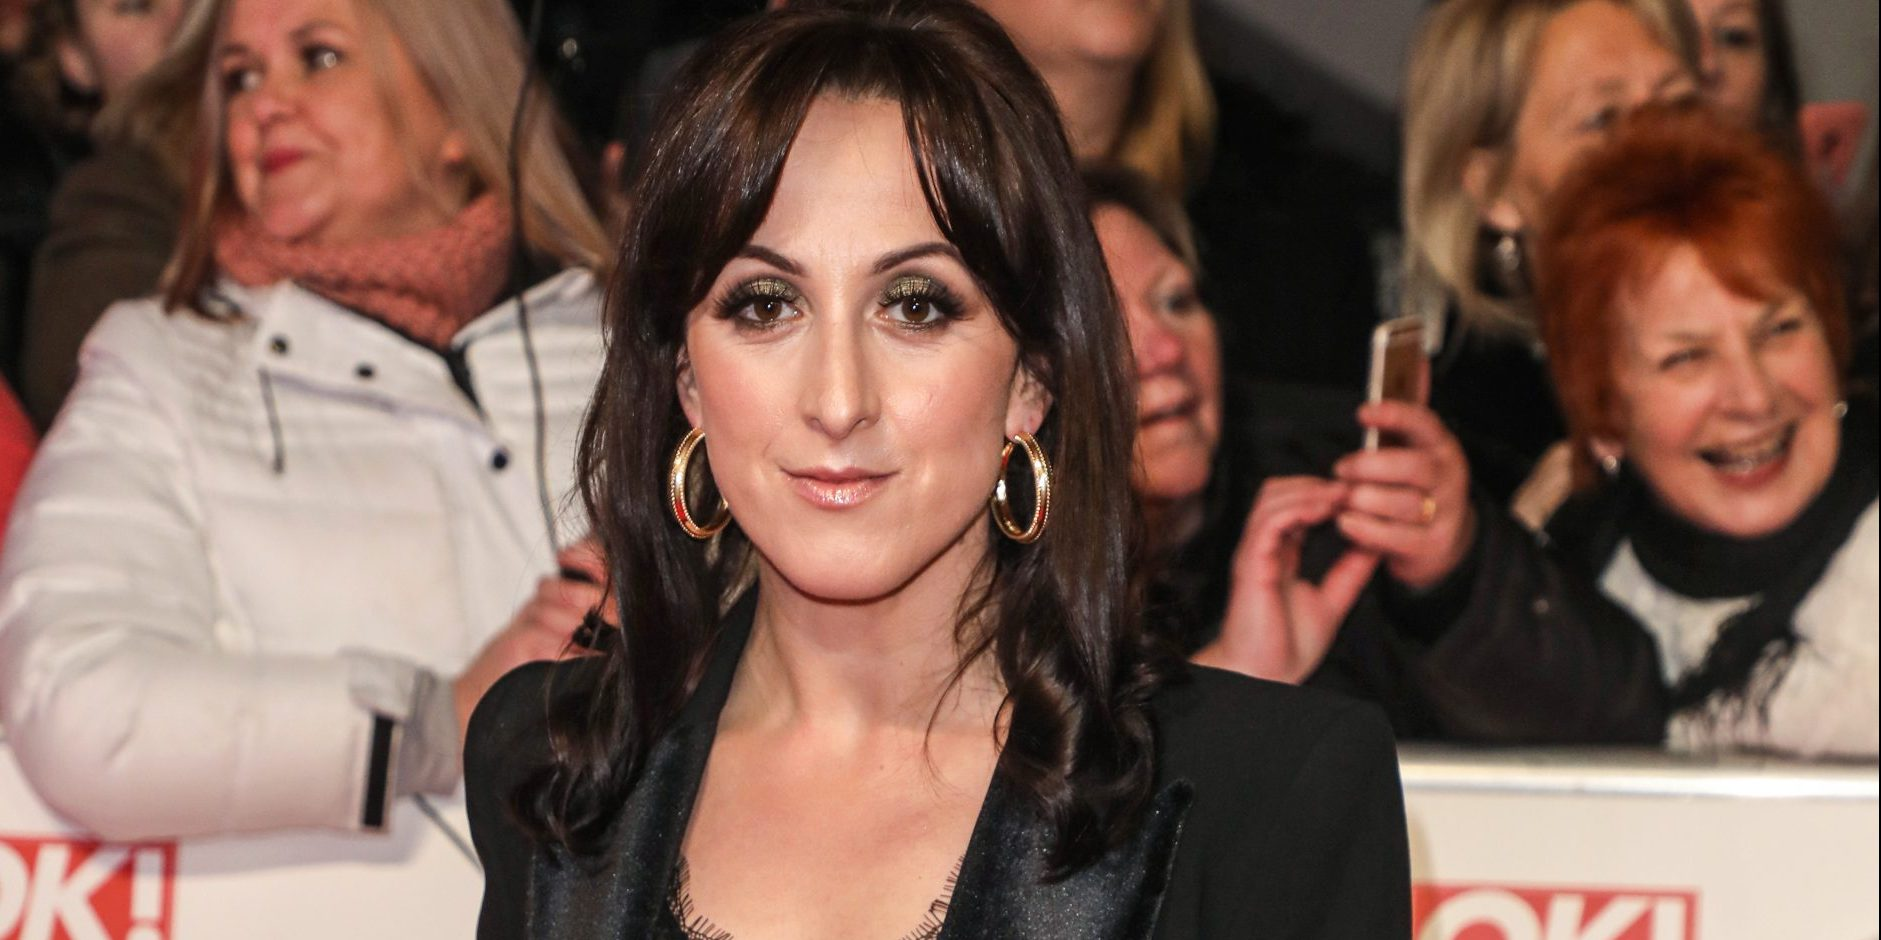 Fans say Natalie Cassidy and fiancé Marc Humphreys are 'adorable' as she posts date night picture